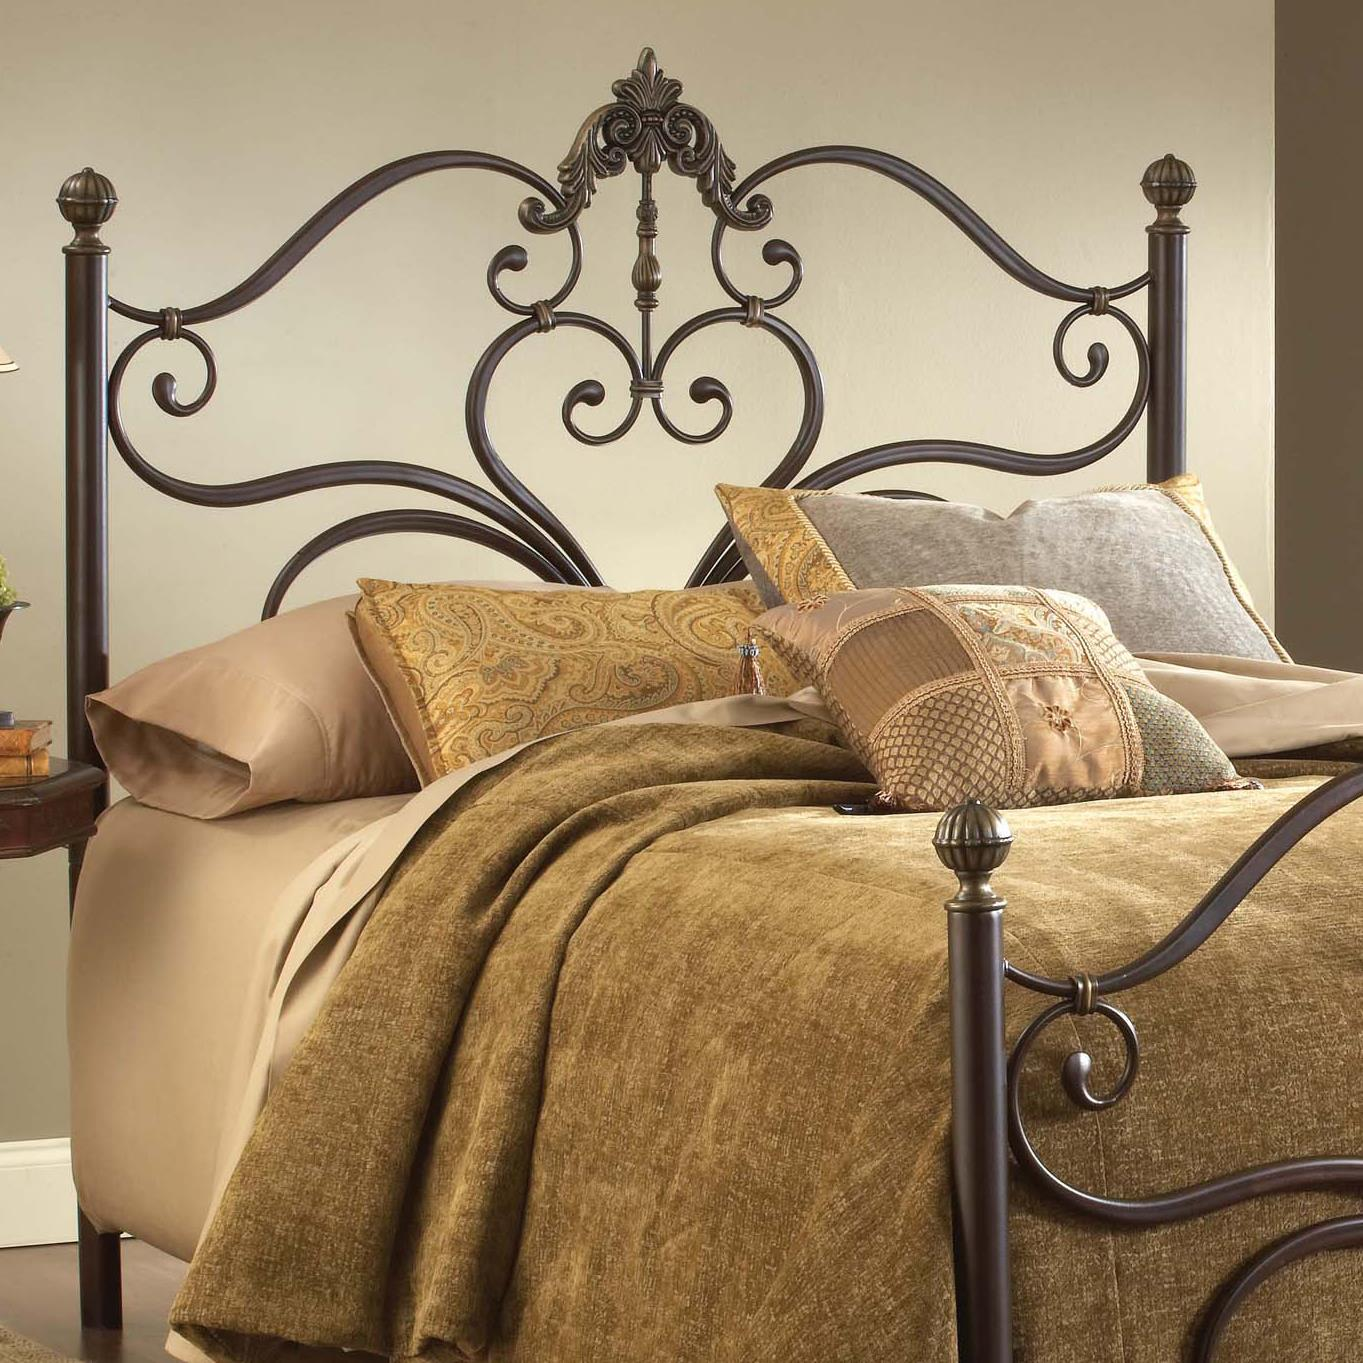 Hillsdale Metal Beds Newton King Headboard with Rails - Item Number: 1756HKR